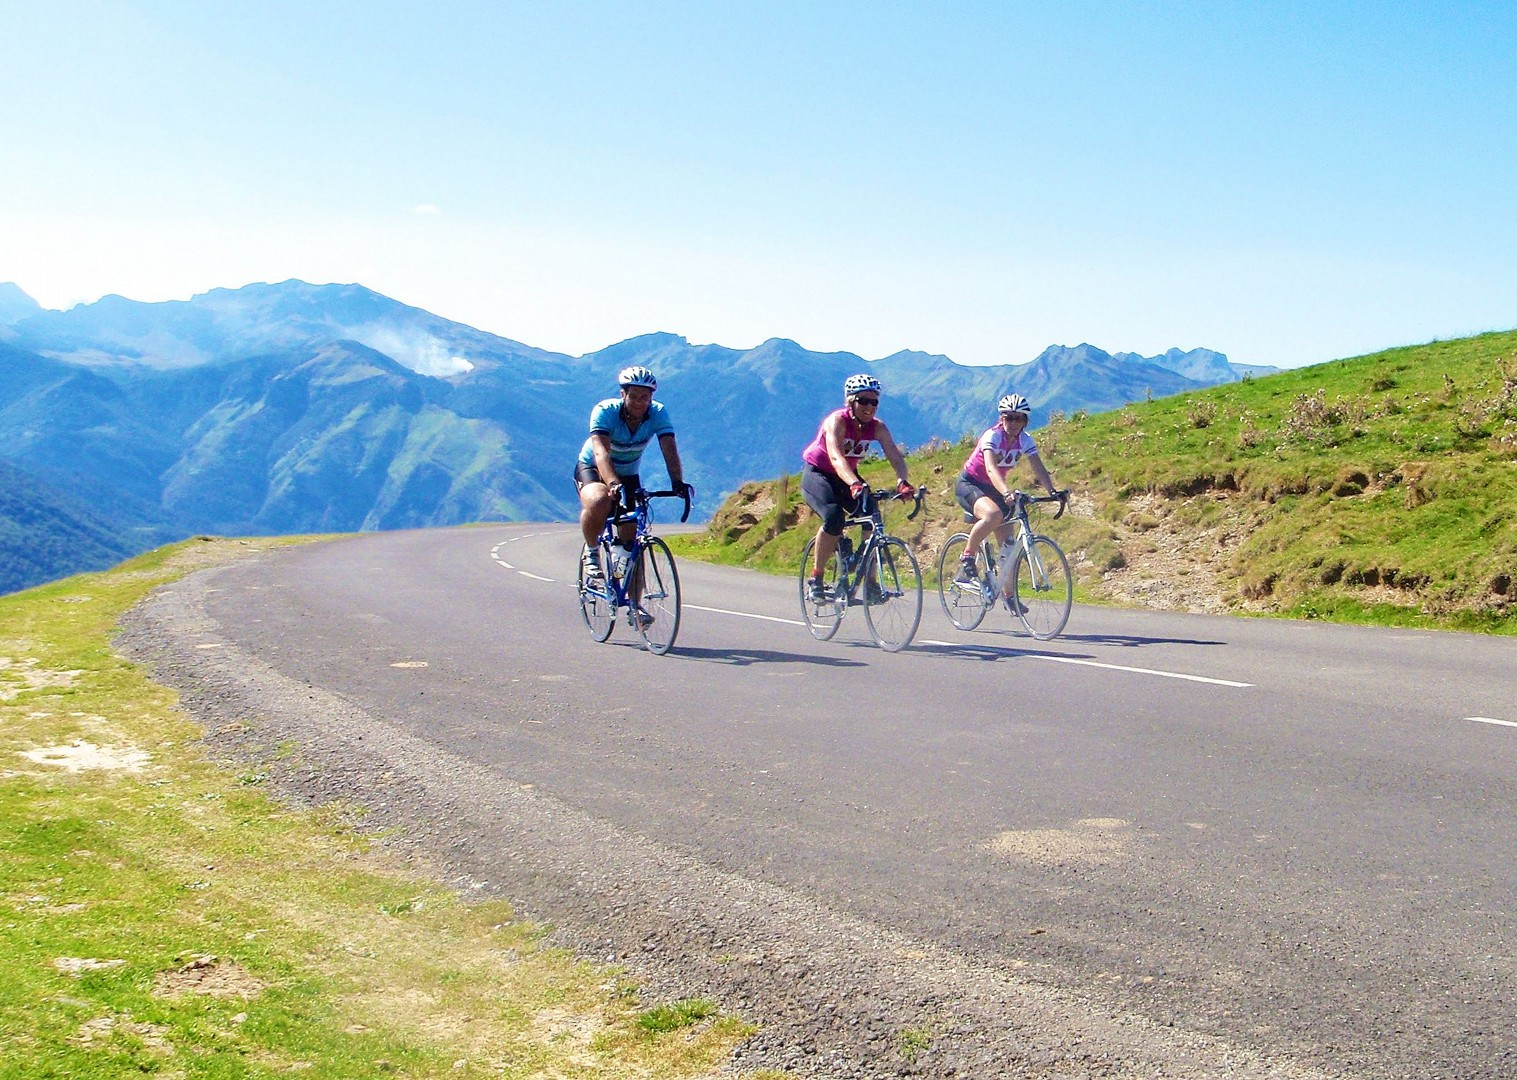 road-cycling-holiday-france-fitness-week.jpg - France - Pyrenees Fitness Week (Grade 2-3) - Guided Road Cycling Holiday - Road Cycling